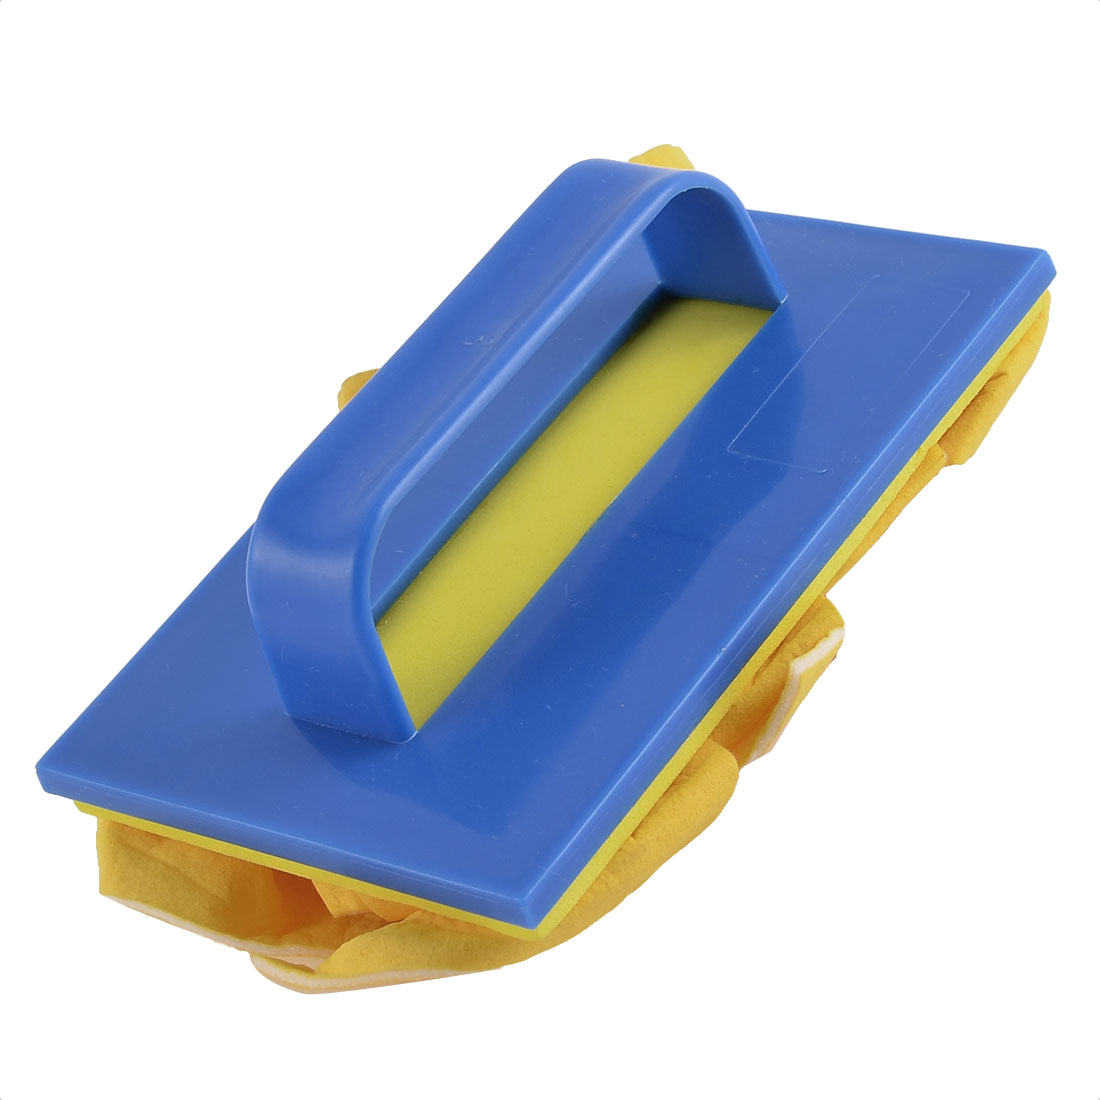 PX004 Plastic Handle Wall Paper Applicator Embossing Paint Tool Blue Yellow